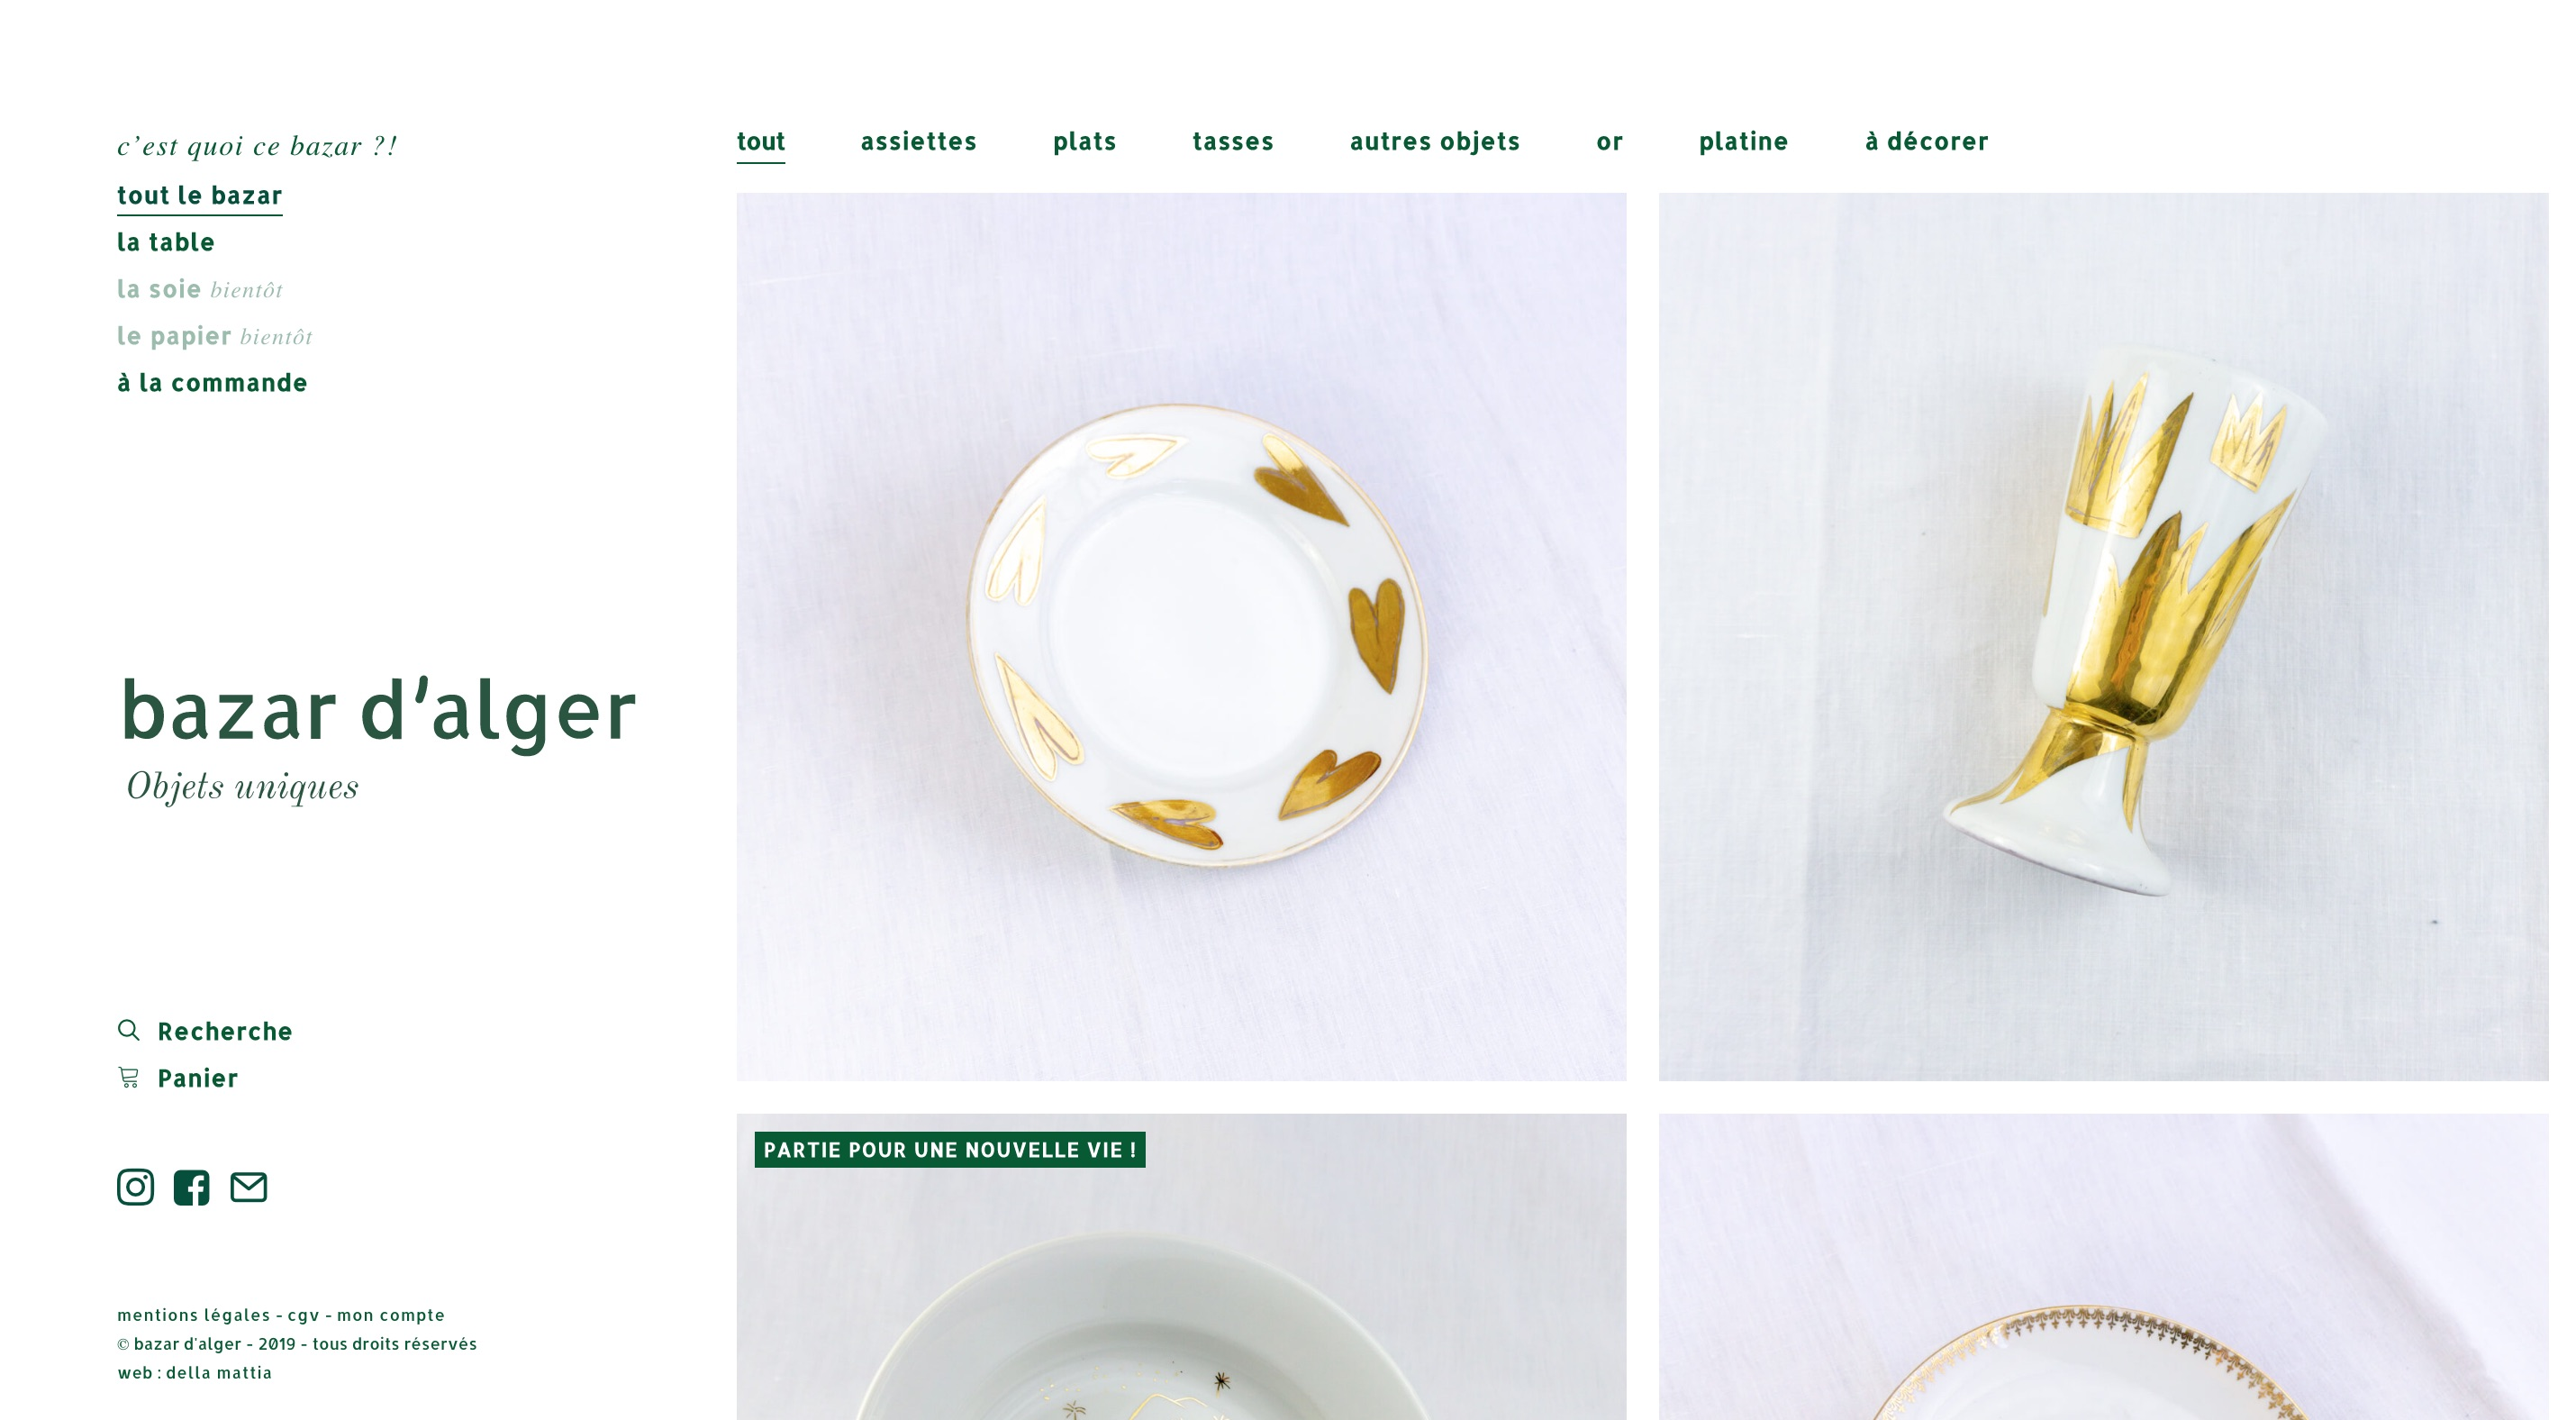 bazar-dalger-website-screenshot